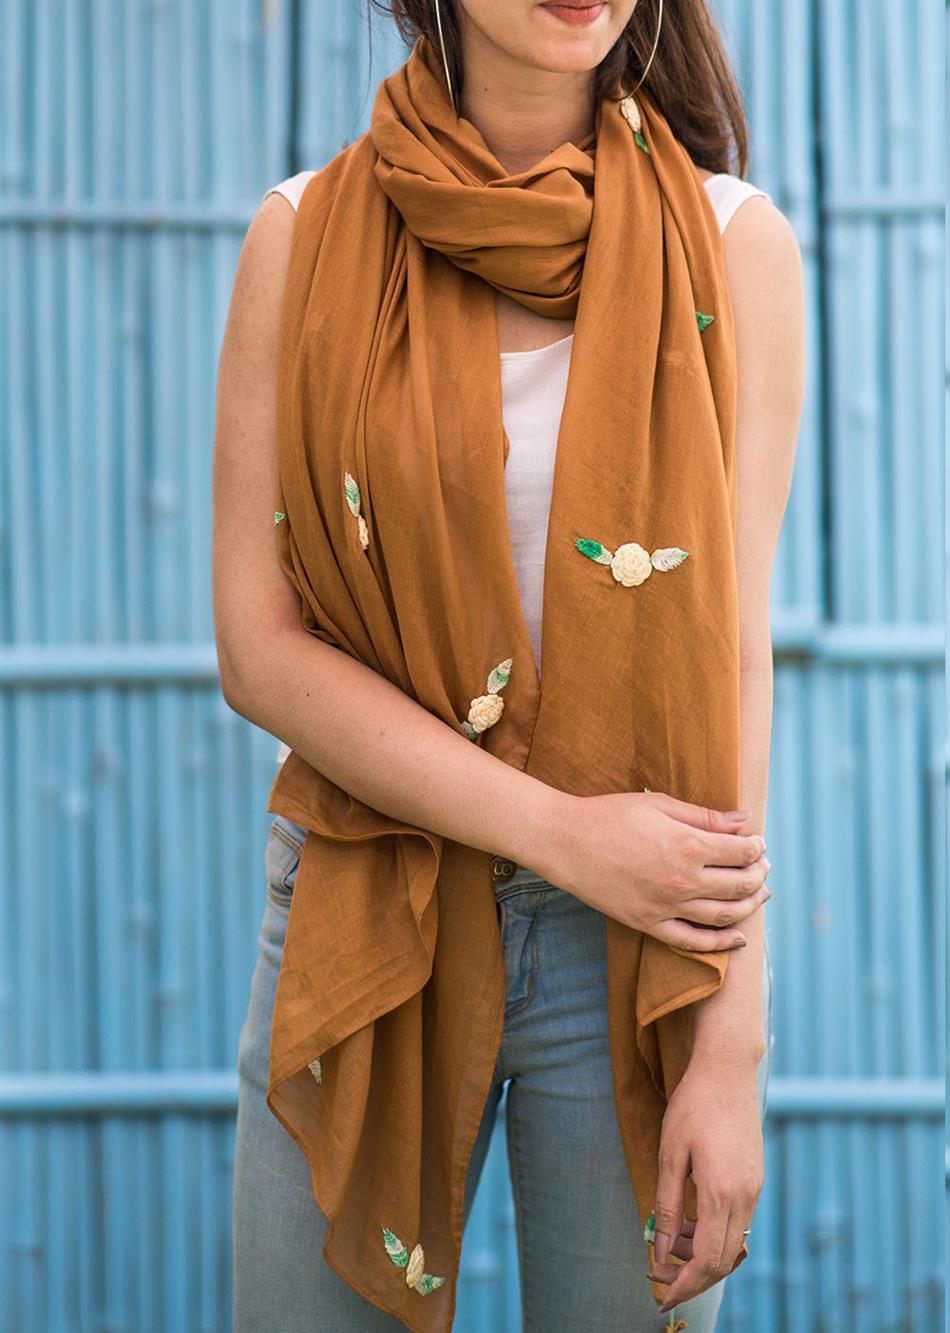 Balletic mood - Brown (Hand embroidered scarf) By Jovi Fashion